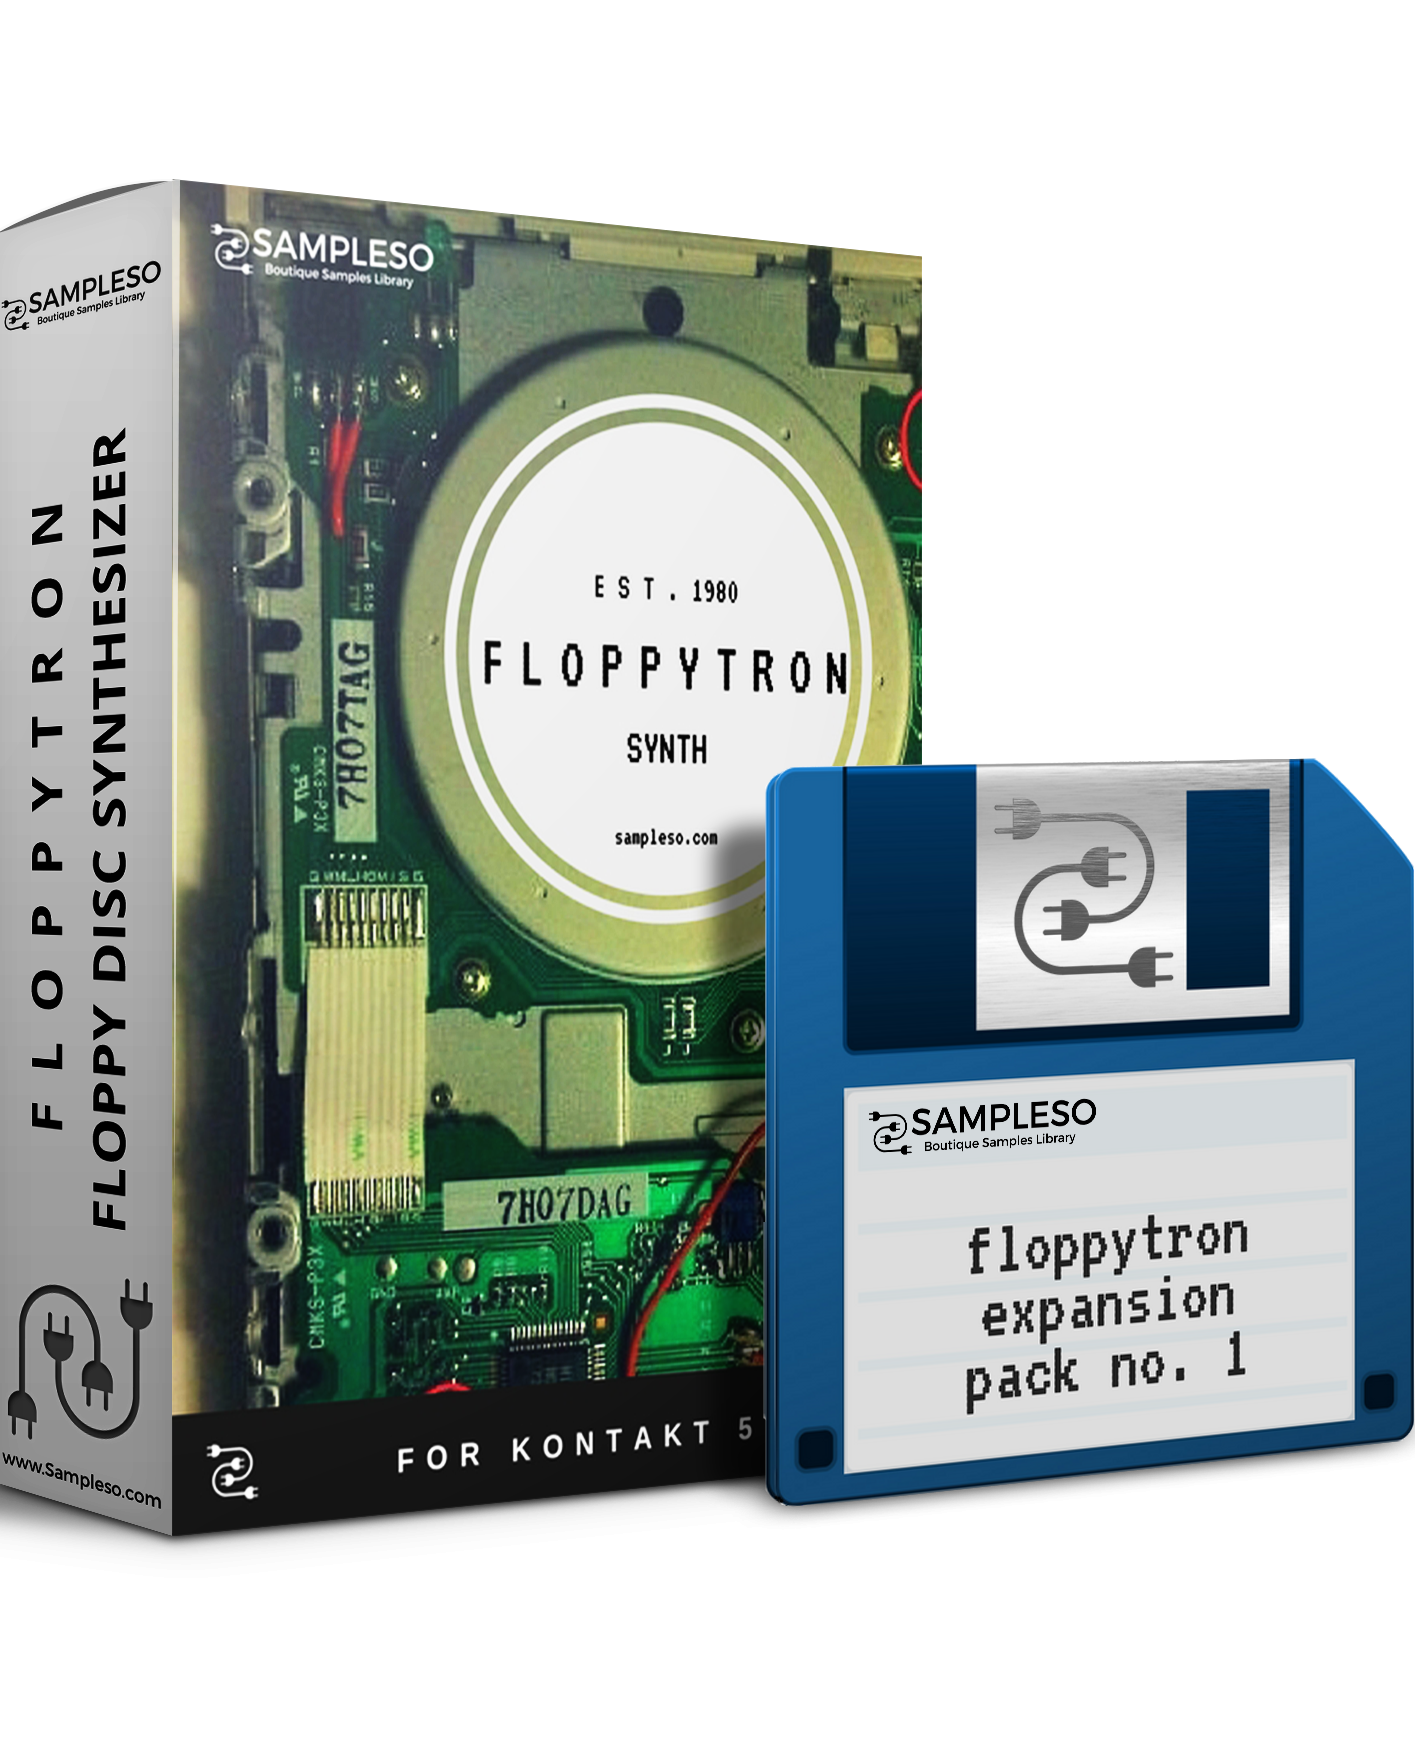 80% off 'Floppytron Synth + Expansion' by Sampleso